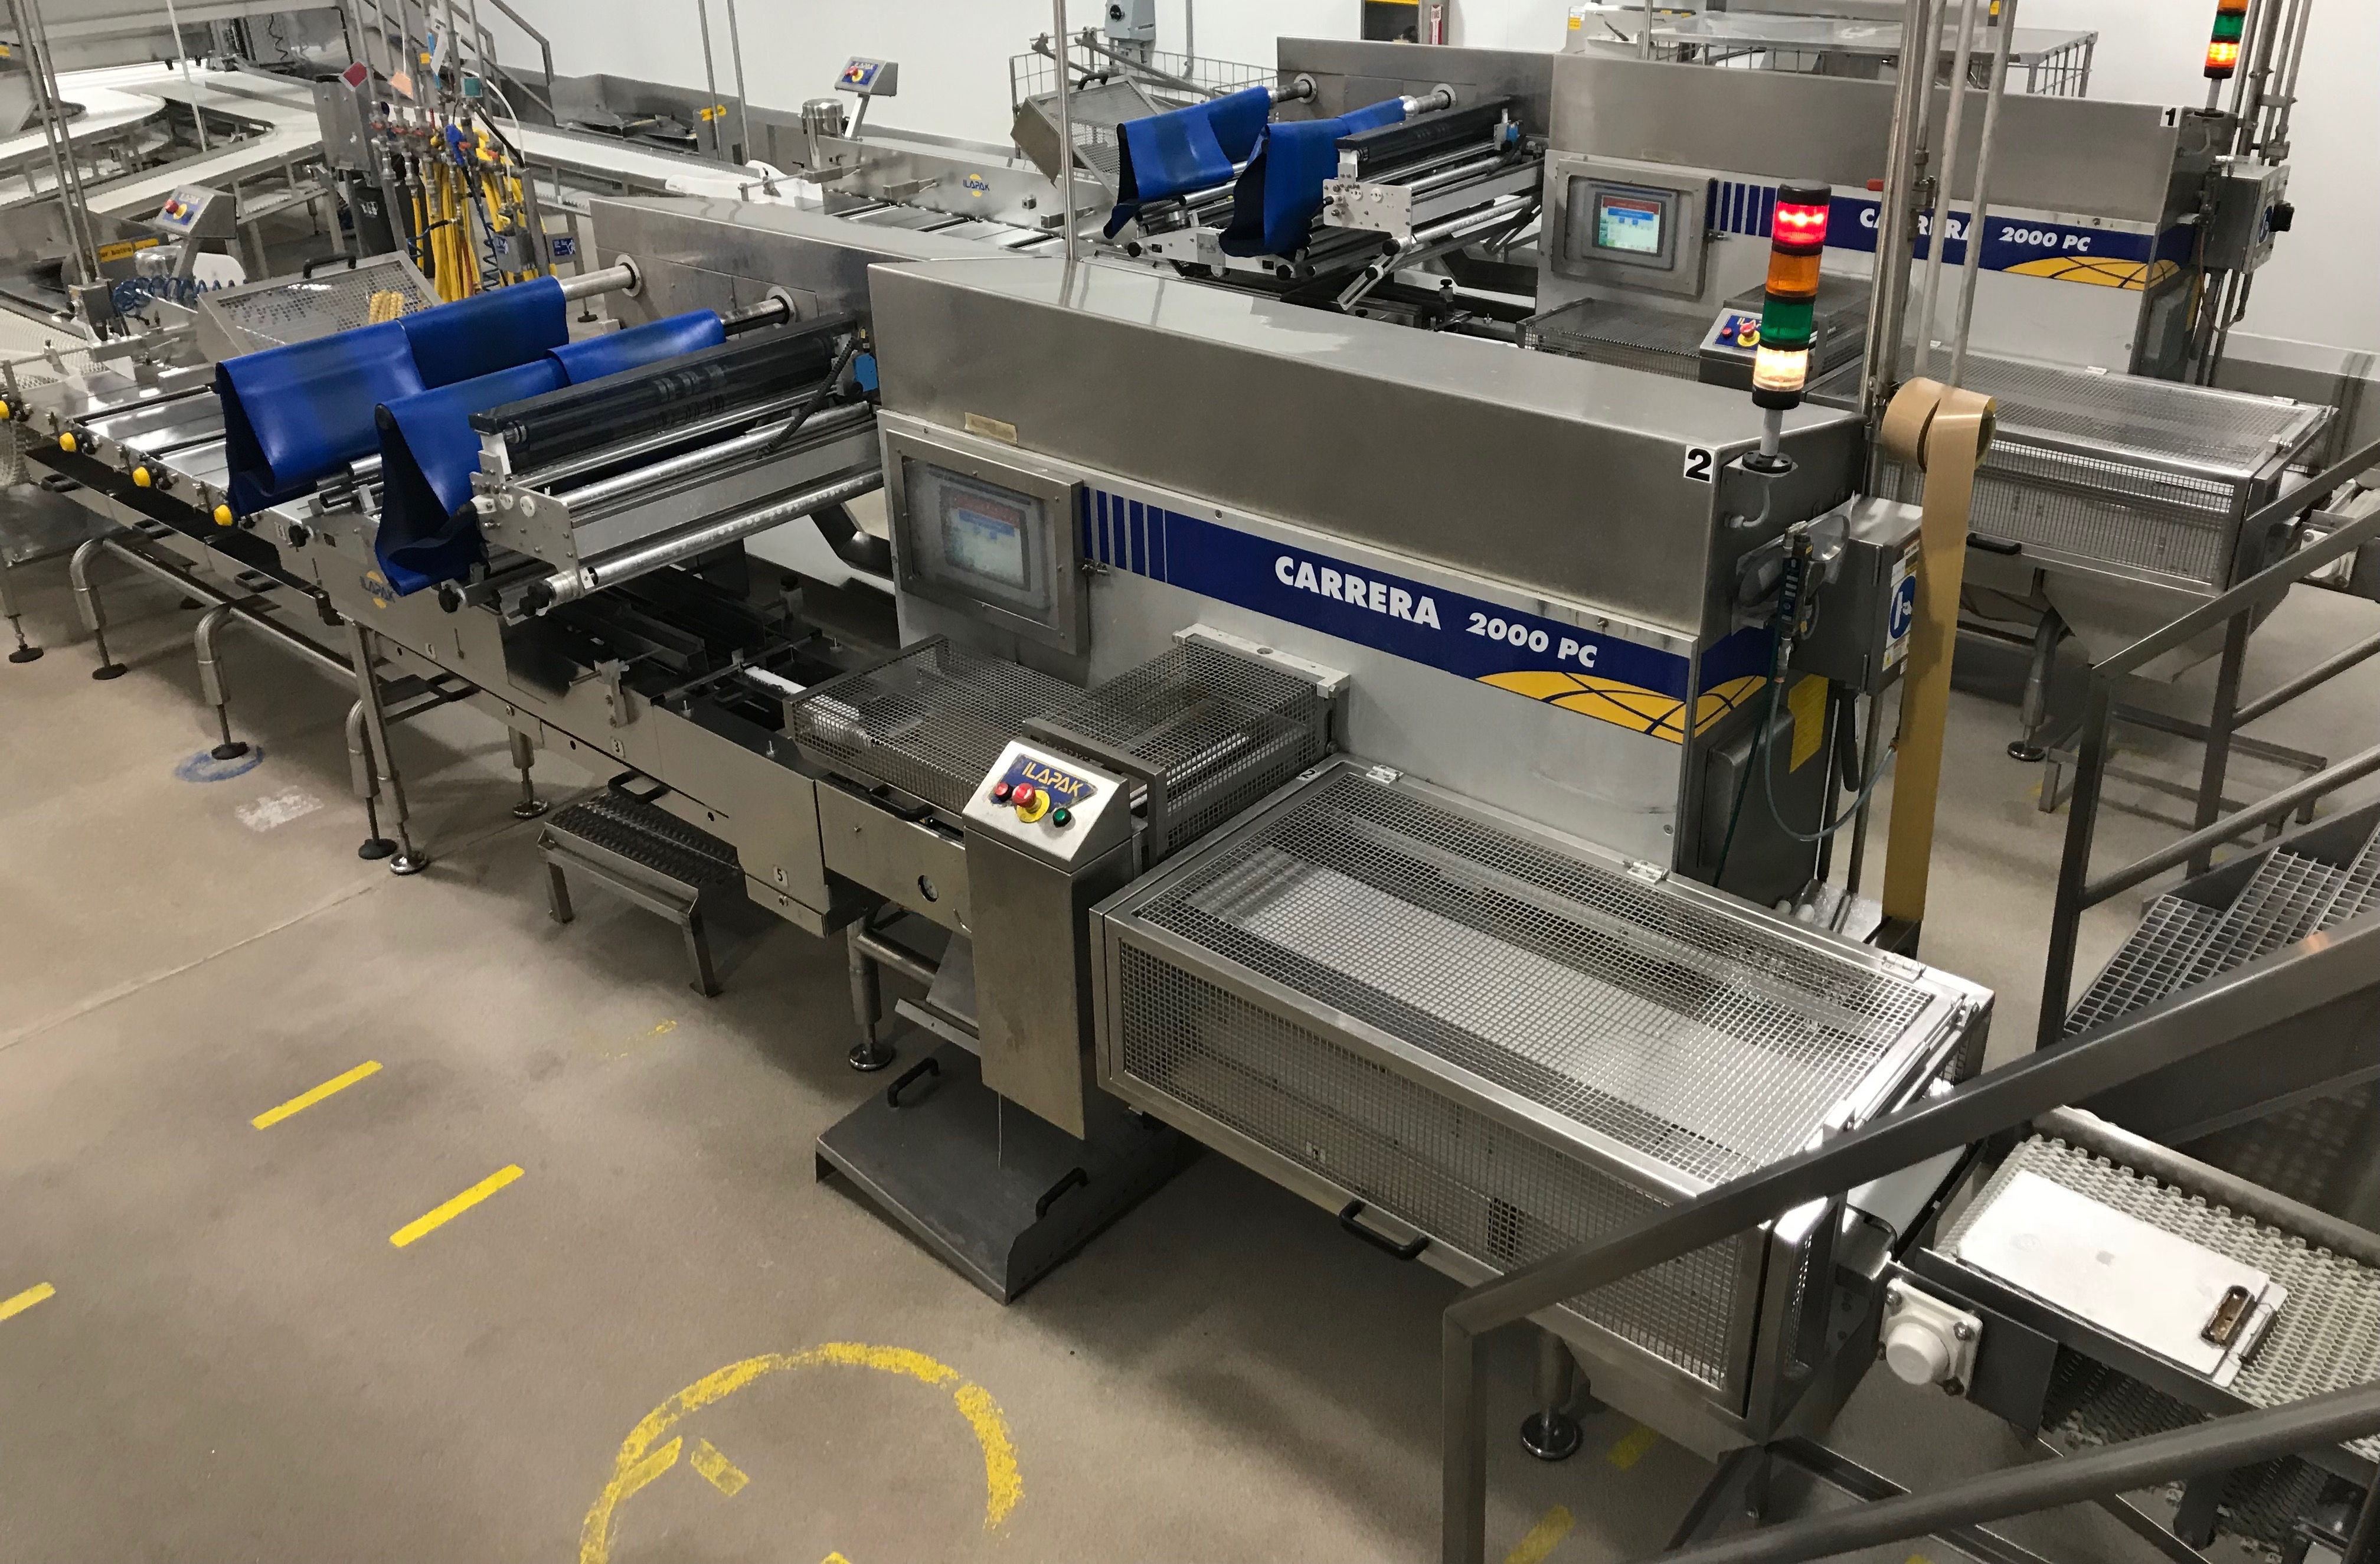 Dr. Oetker - Late Model Frozen Pizza Production and Packaging Plant - Grand Falls, NB, CAN